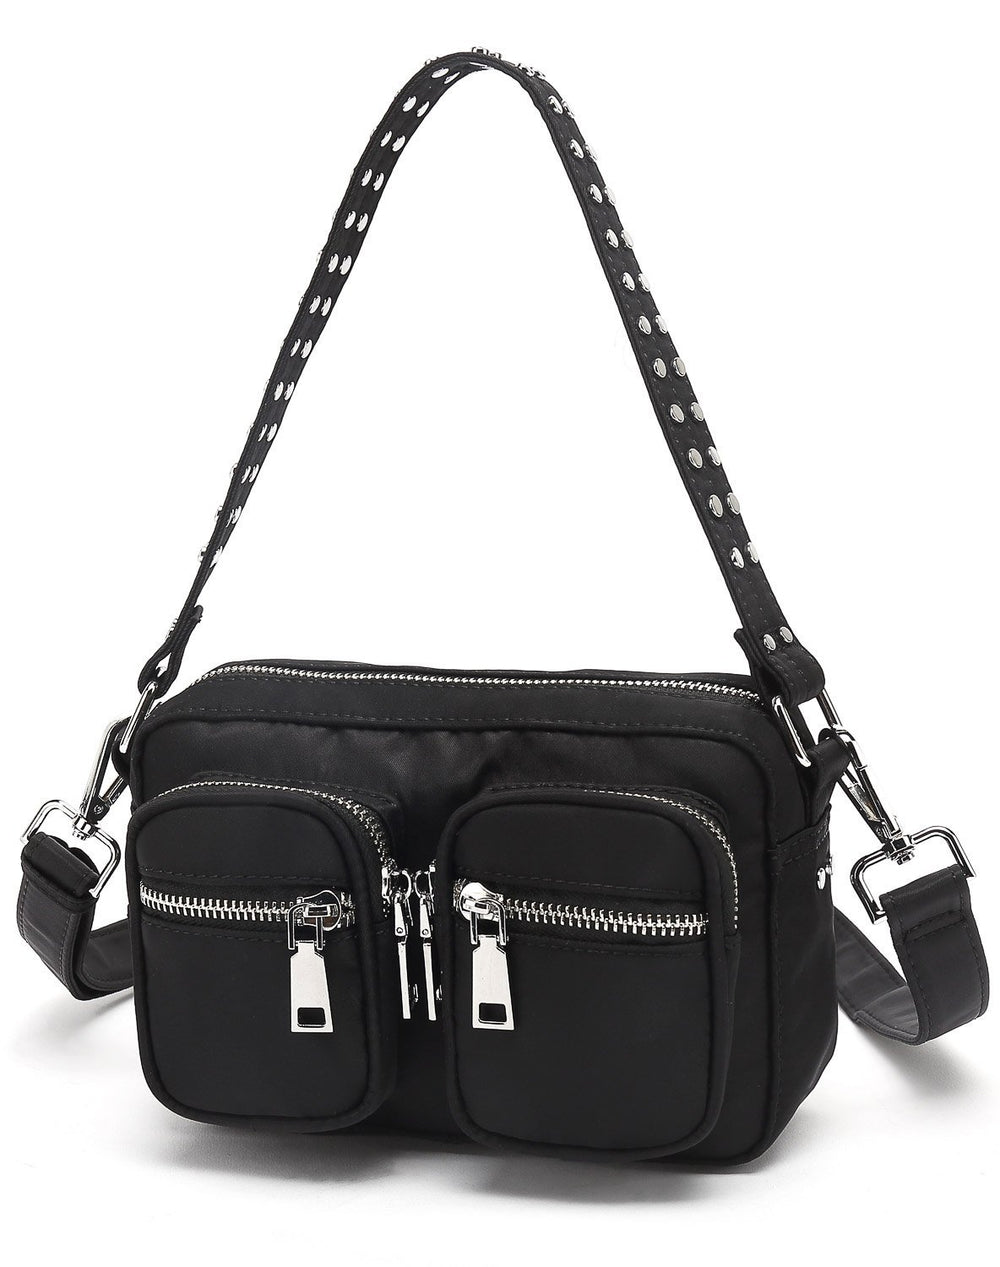 Noella Kendra bag black nylon - Online-Mode